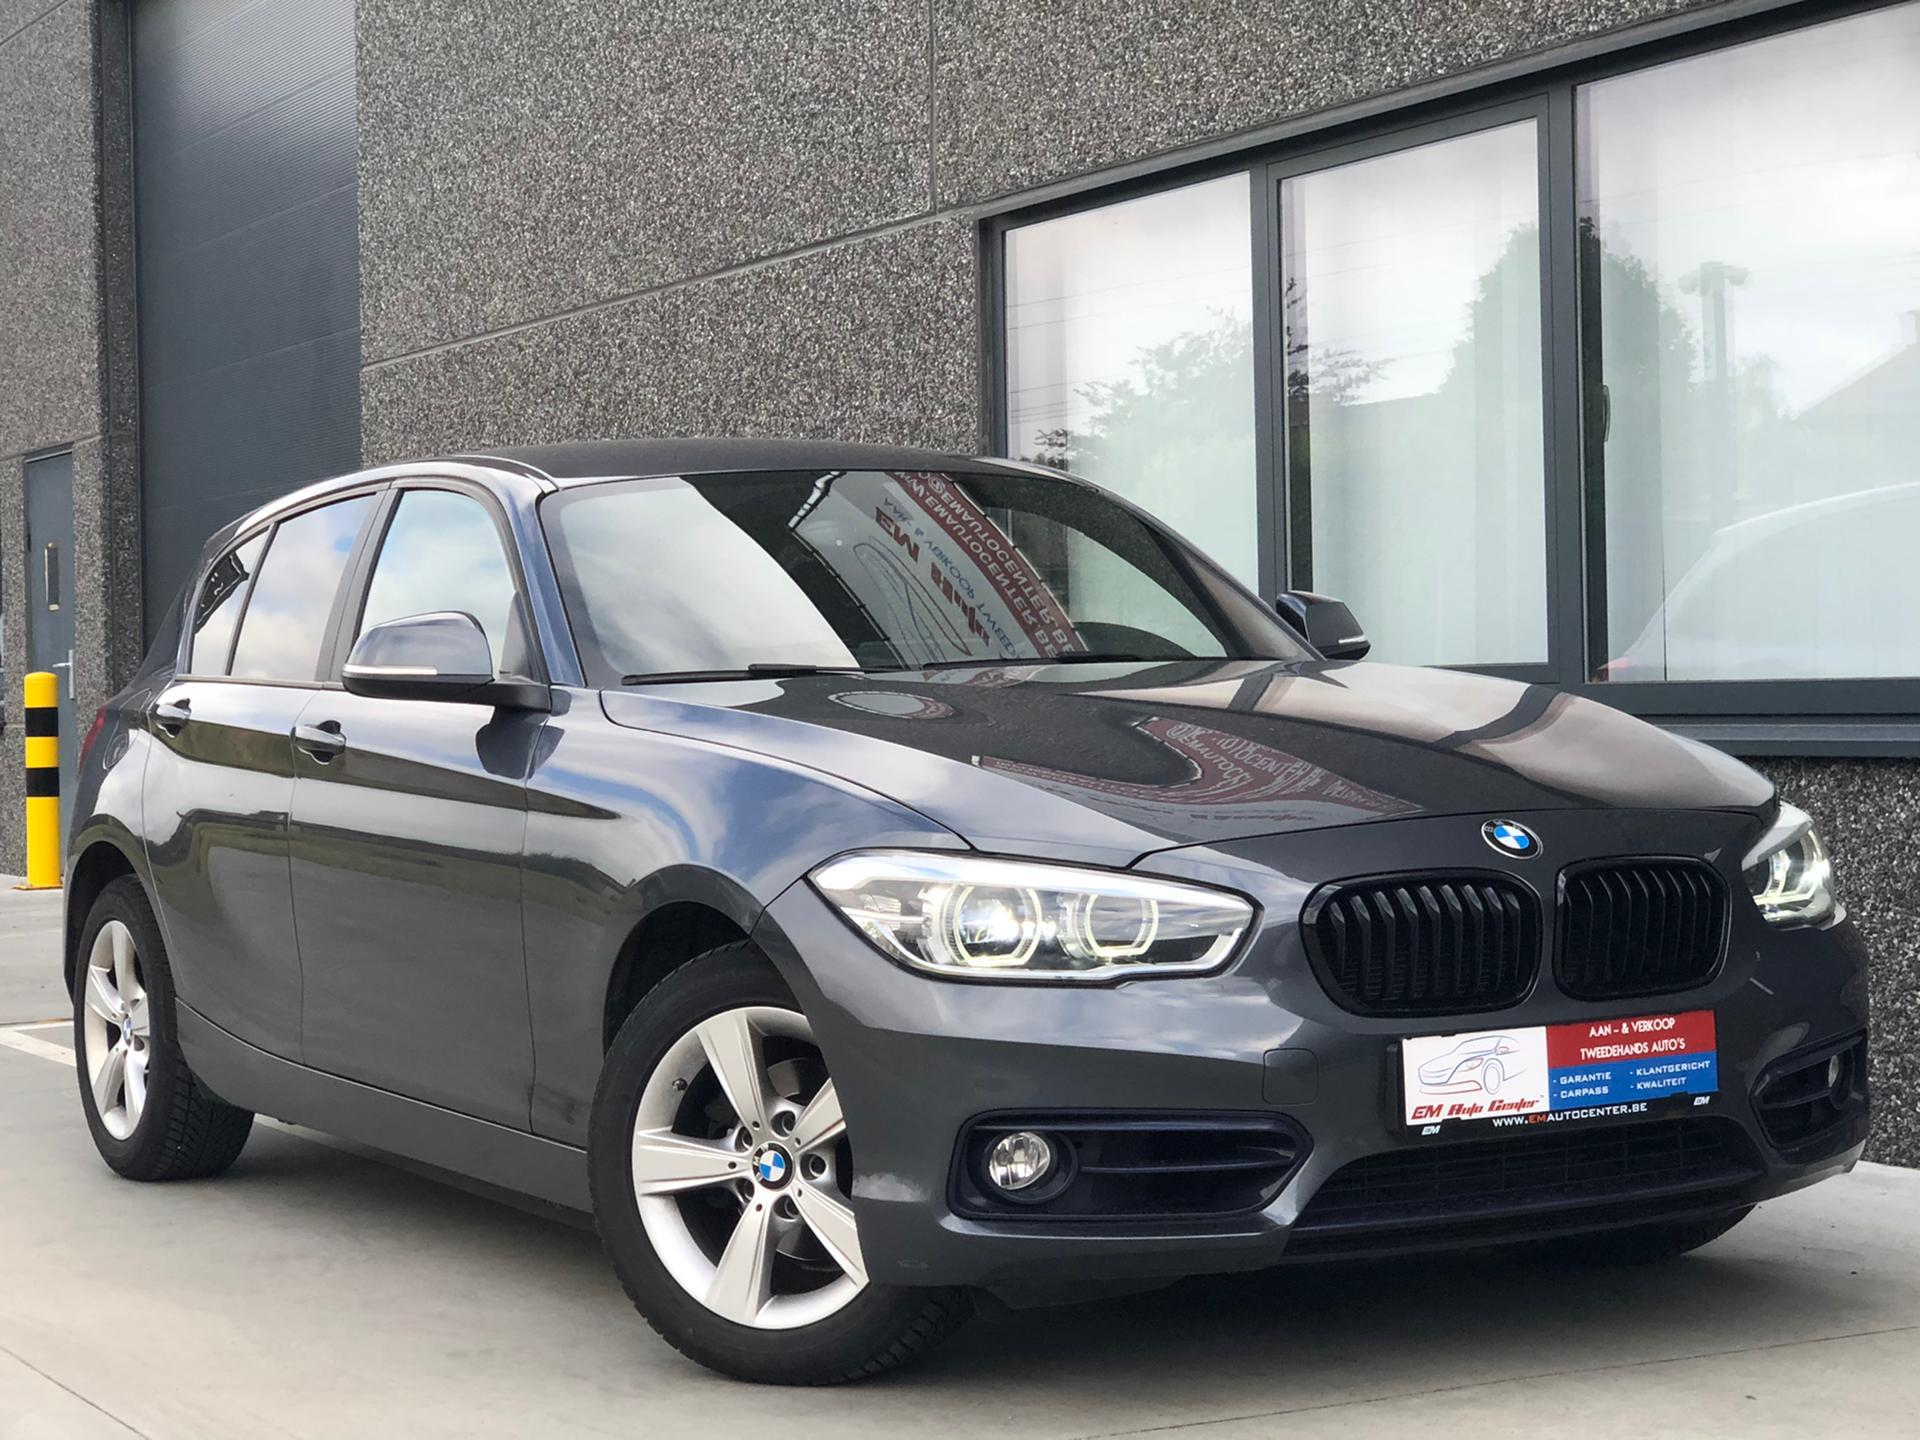 BMW 118d Facelift